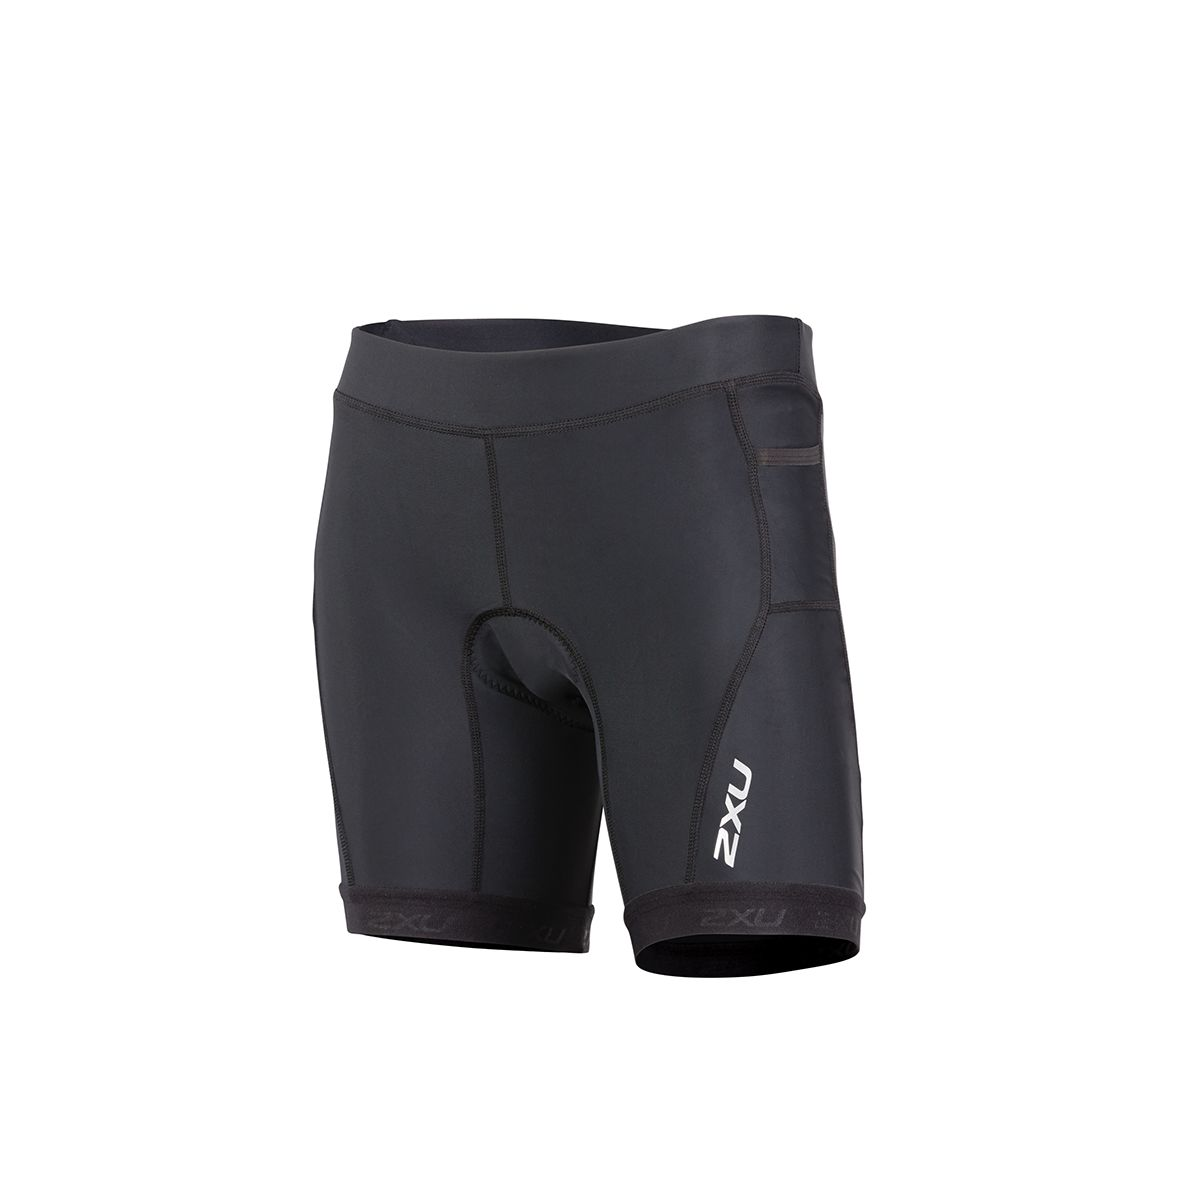 "ACTIVE TRI 7"" SHORT Women"